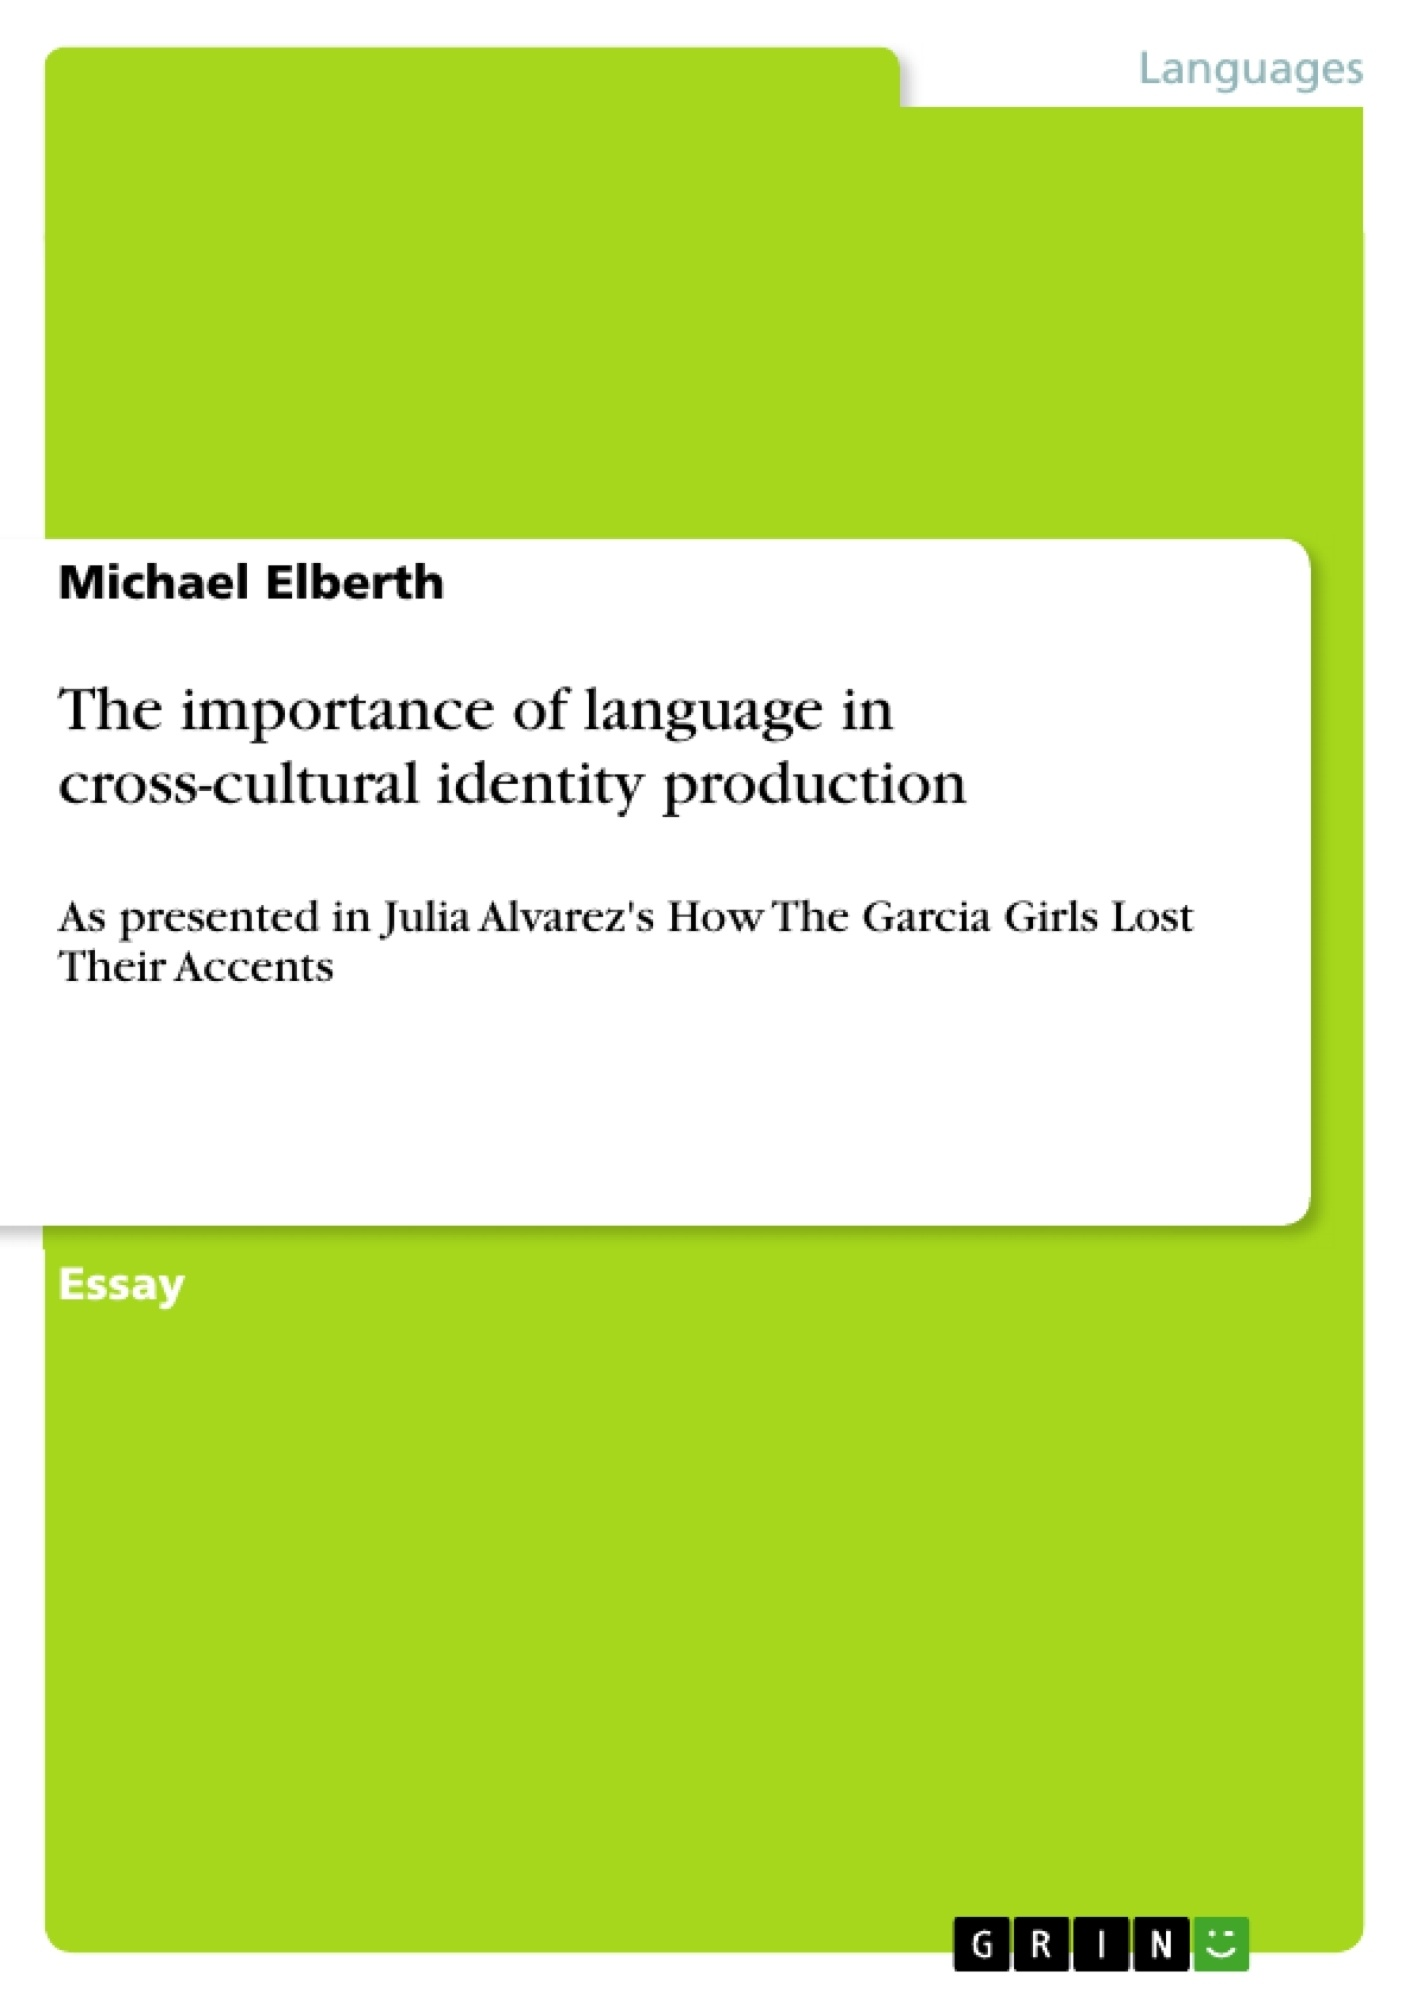 Title: The importance of language in cross-cultural identity production